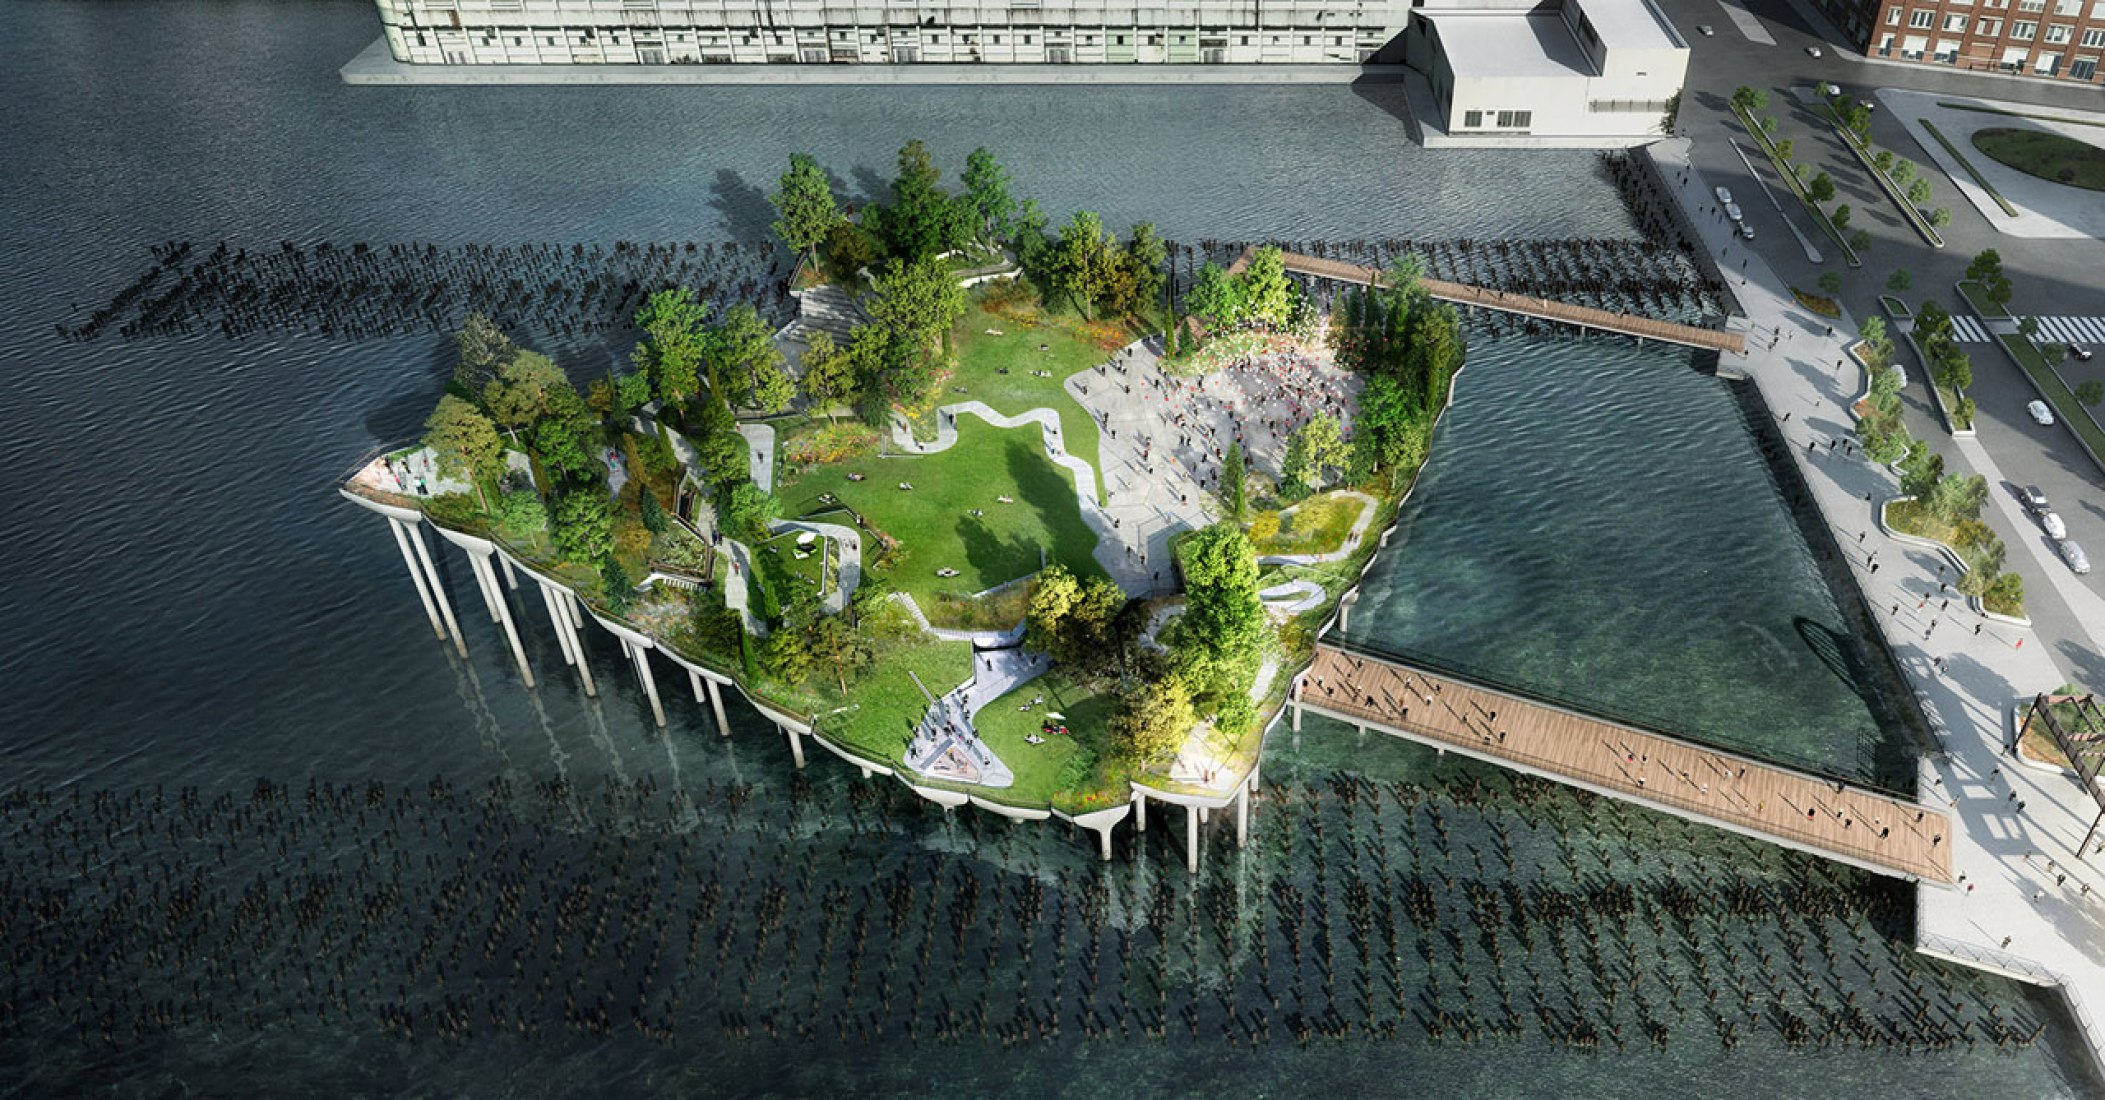 Pier 55. Image © Pier55, Inc. and Heatherwick Studio.